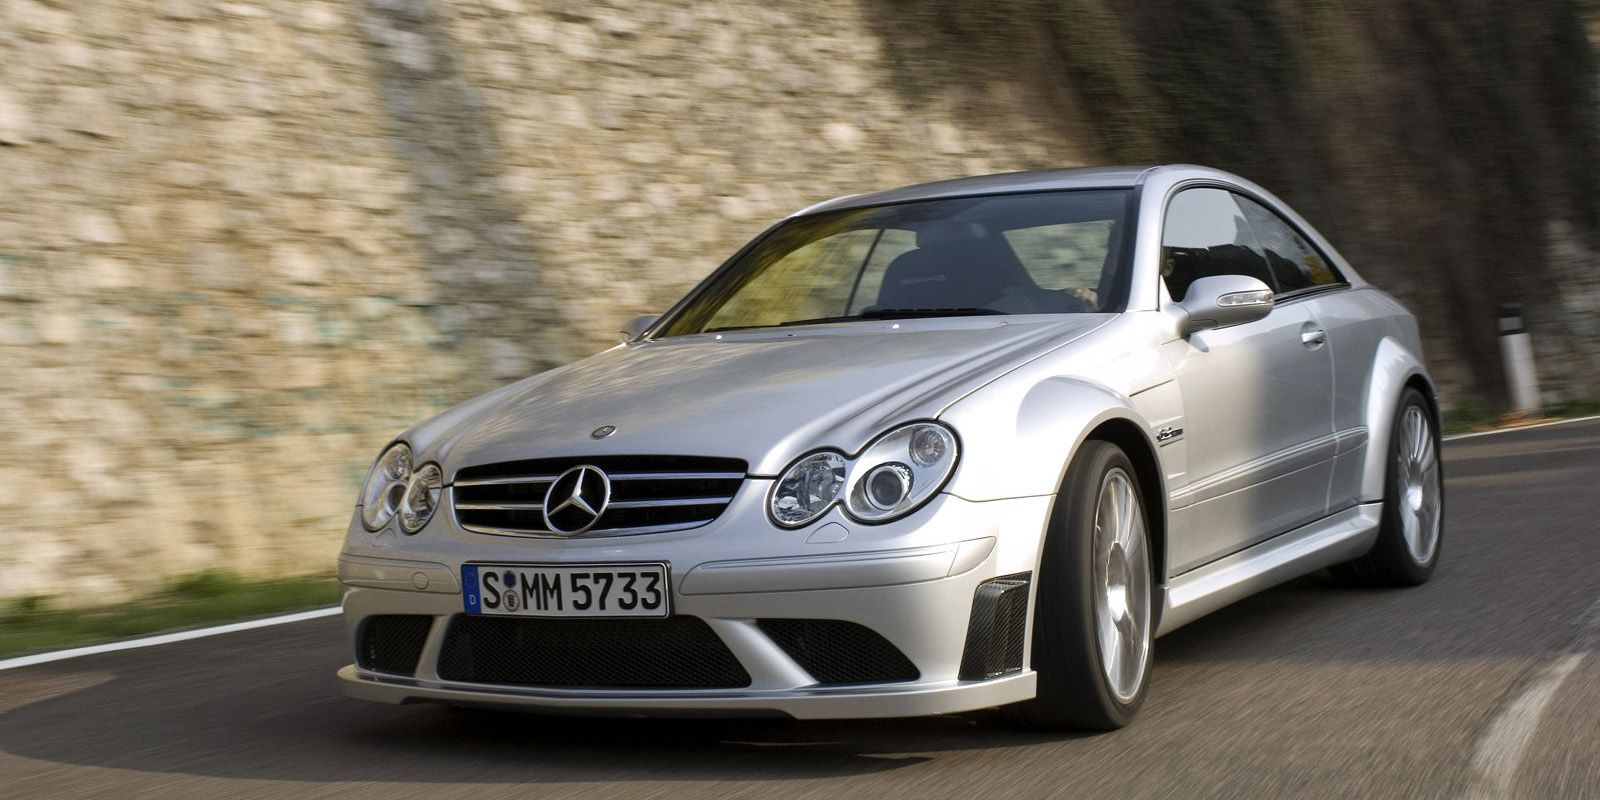 <p>Mercedes proclaimed this car a street-legal version of the official F1 safety car, with fully-functioning aggressive air scoops in the front -- all to help the naturally-aspirated monster produce 500 bhp.</p>